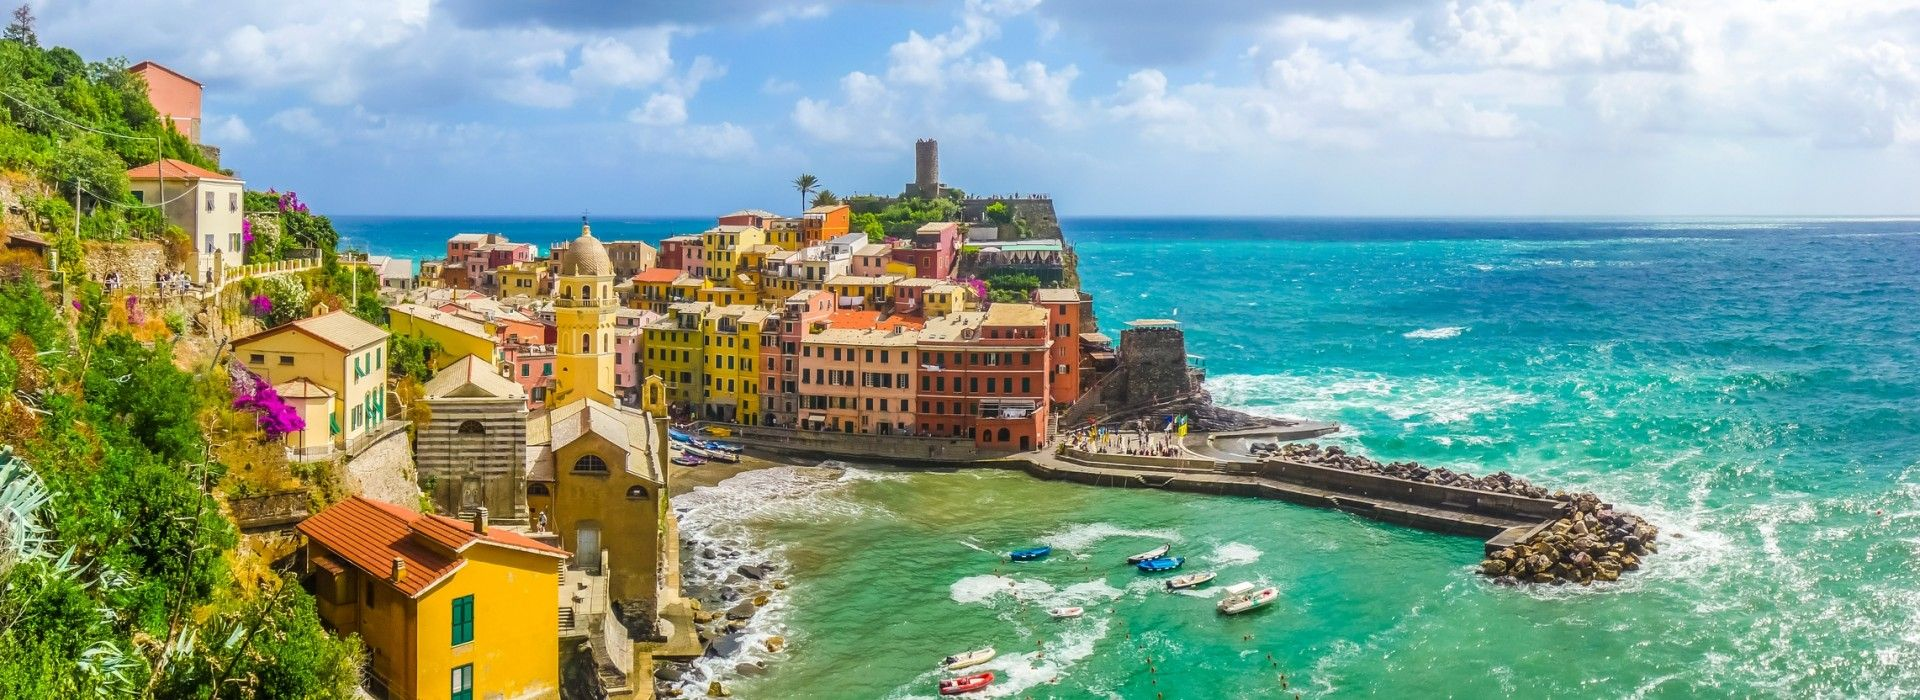 Beach, romance, getaways and relaxation Tours in Italy